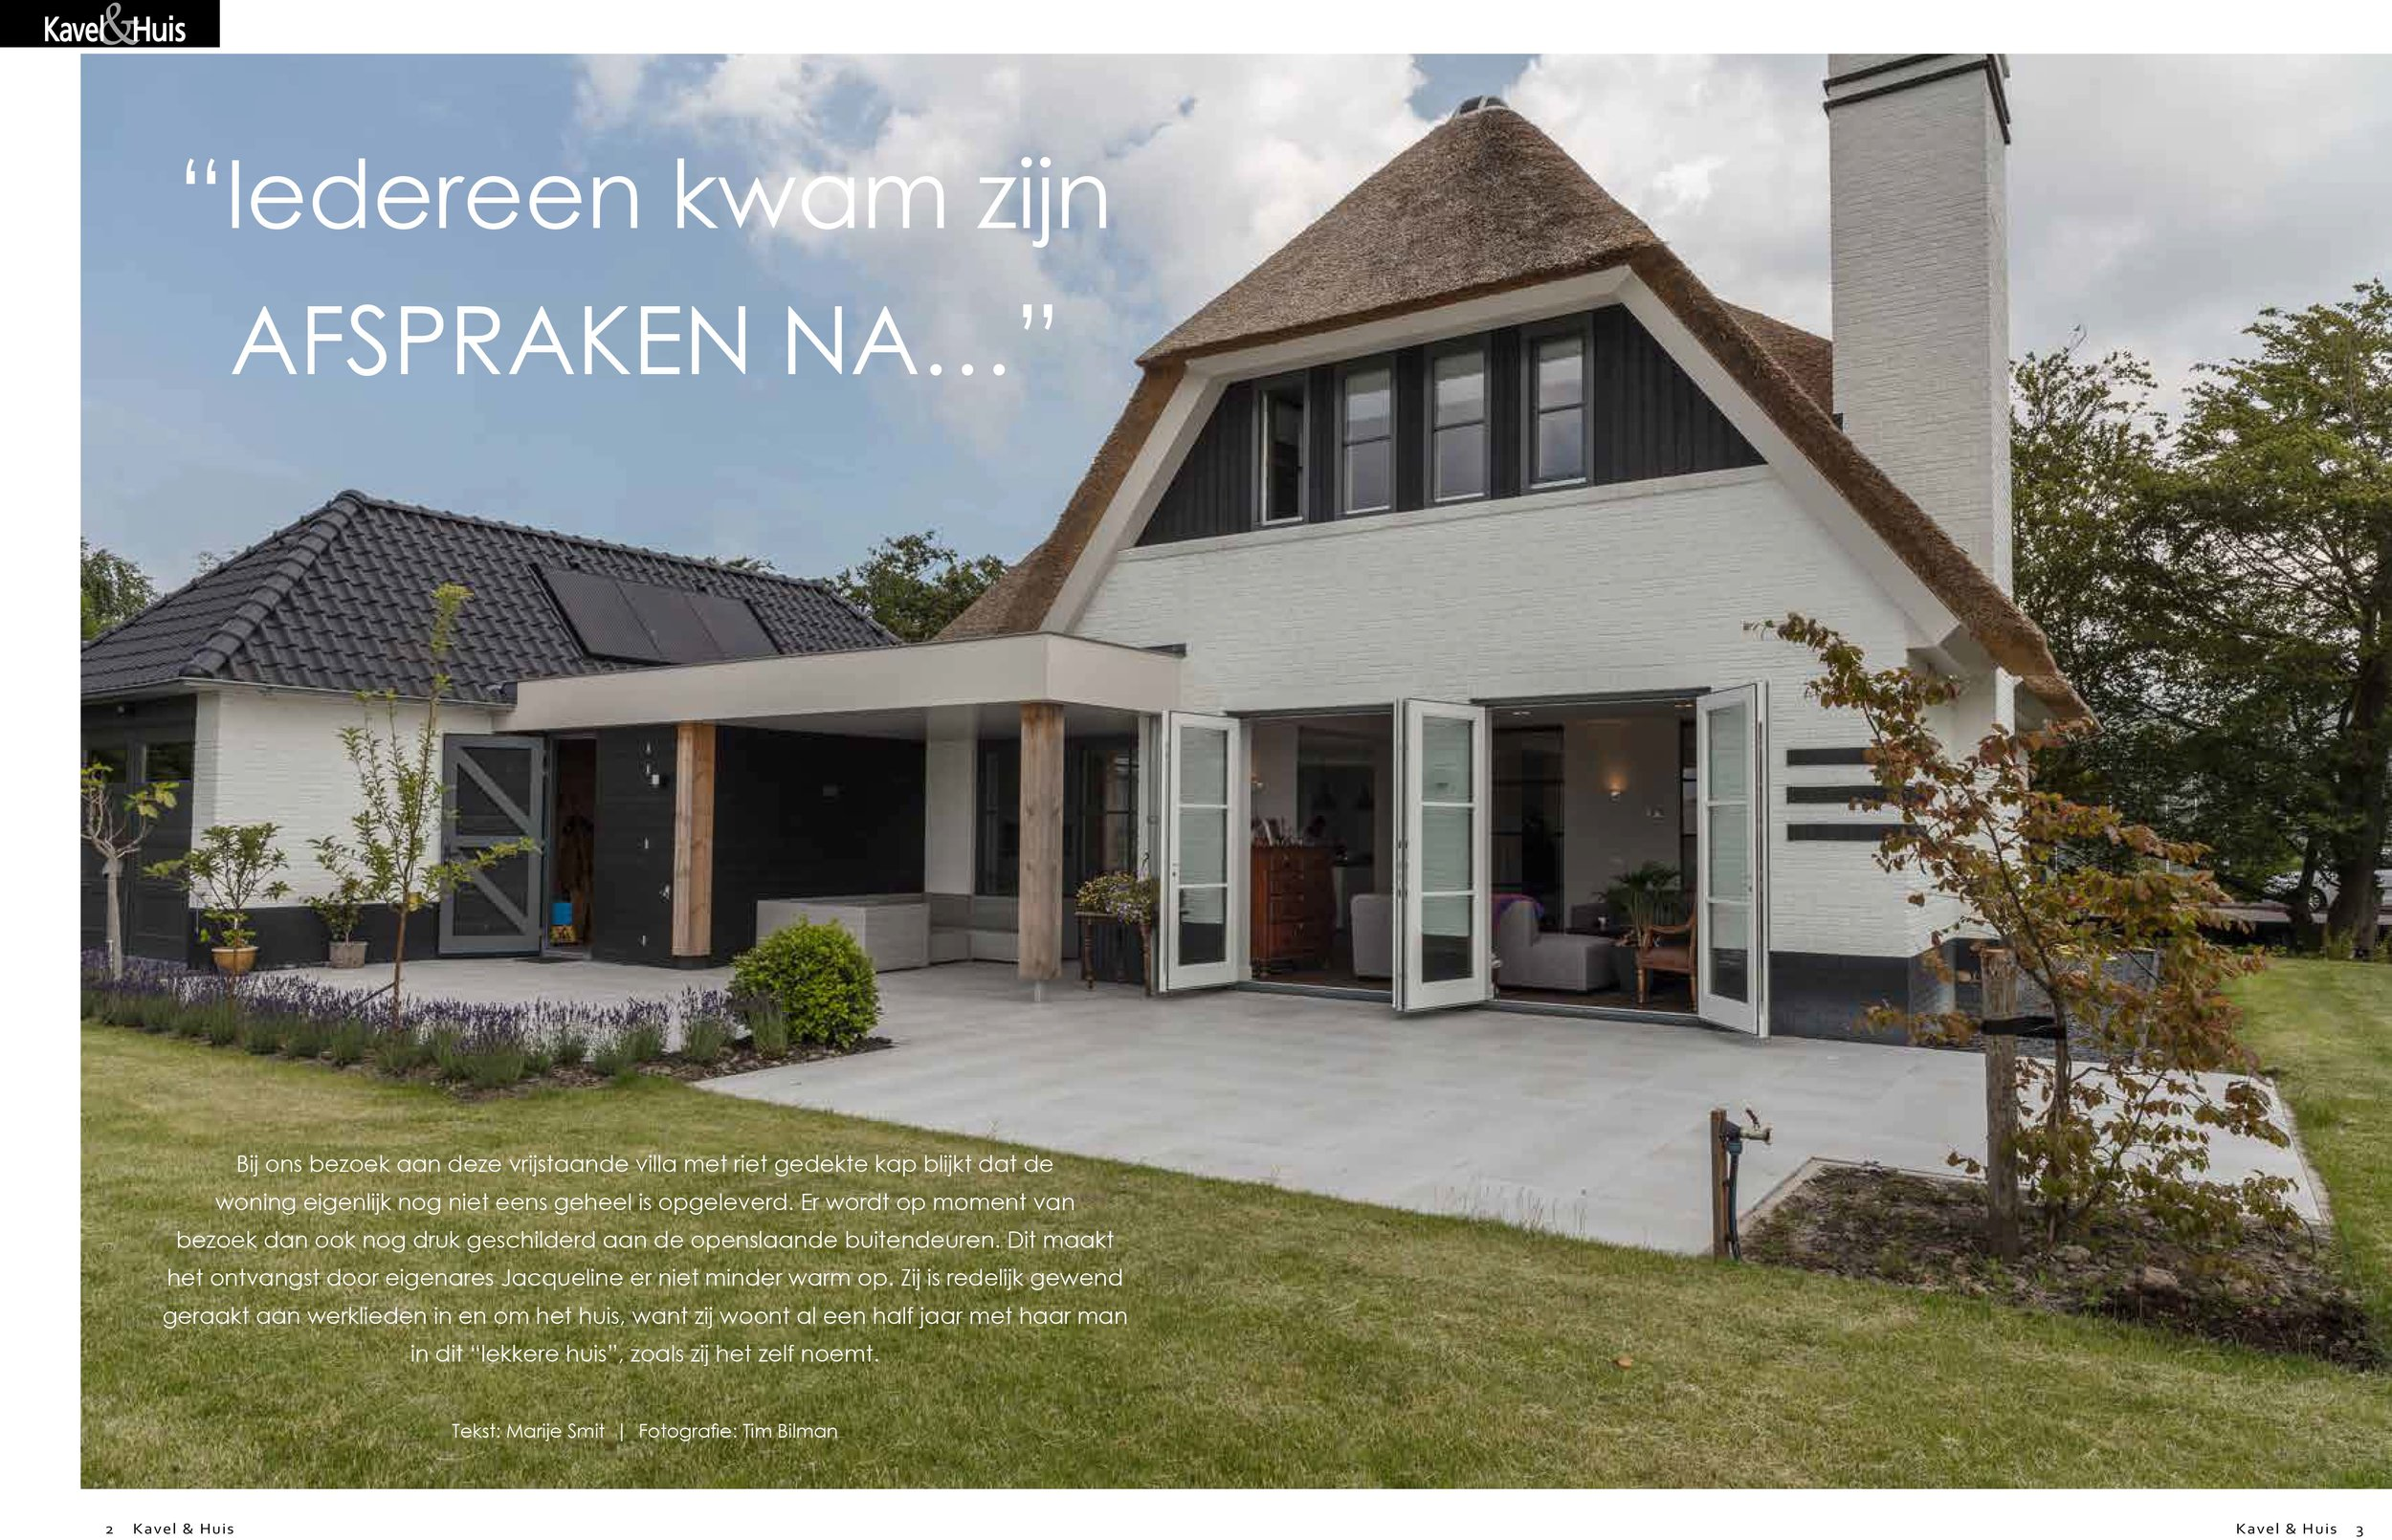 For the dutch magazine  Kavel & Huis  I made a report about this  WnS  house. It was published Summer '18.